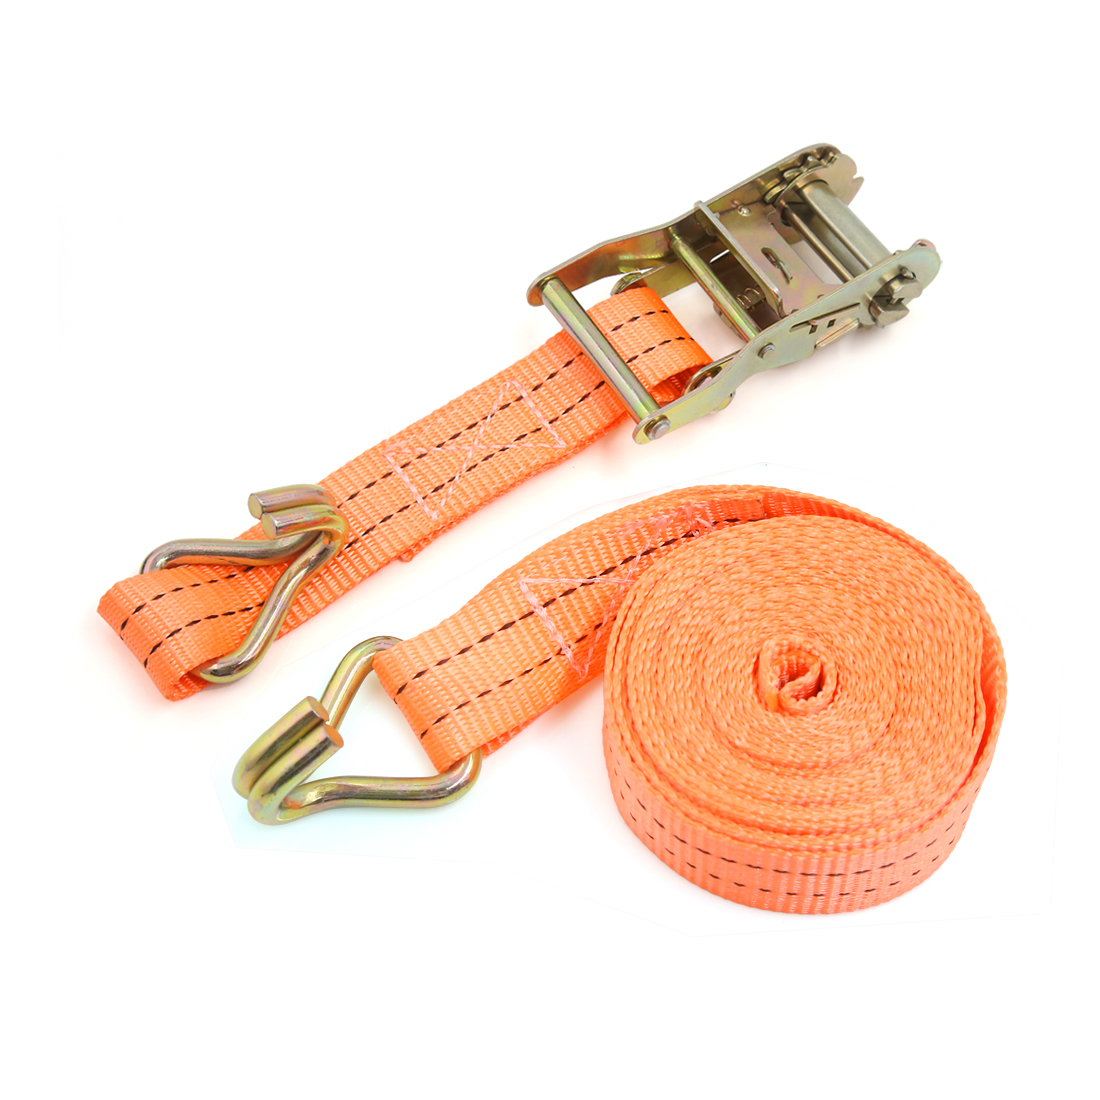 2000kg Capacity 4M Long Tie Down Motorcycle Car Truck Bungee Straps Cords Orange